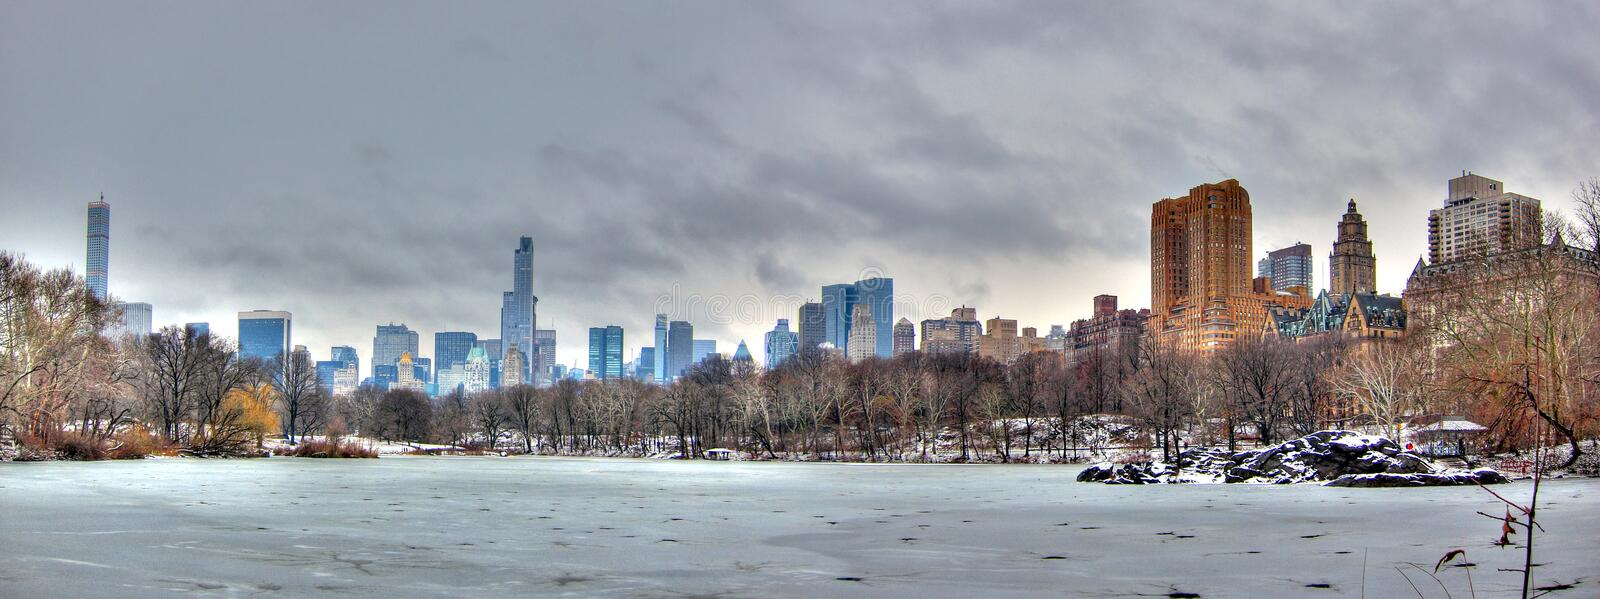 Central Park na neve, Manhattan, New York City foto de stock royalty free